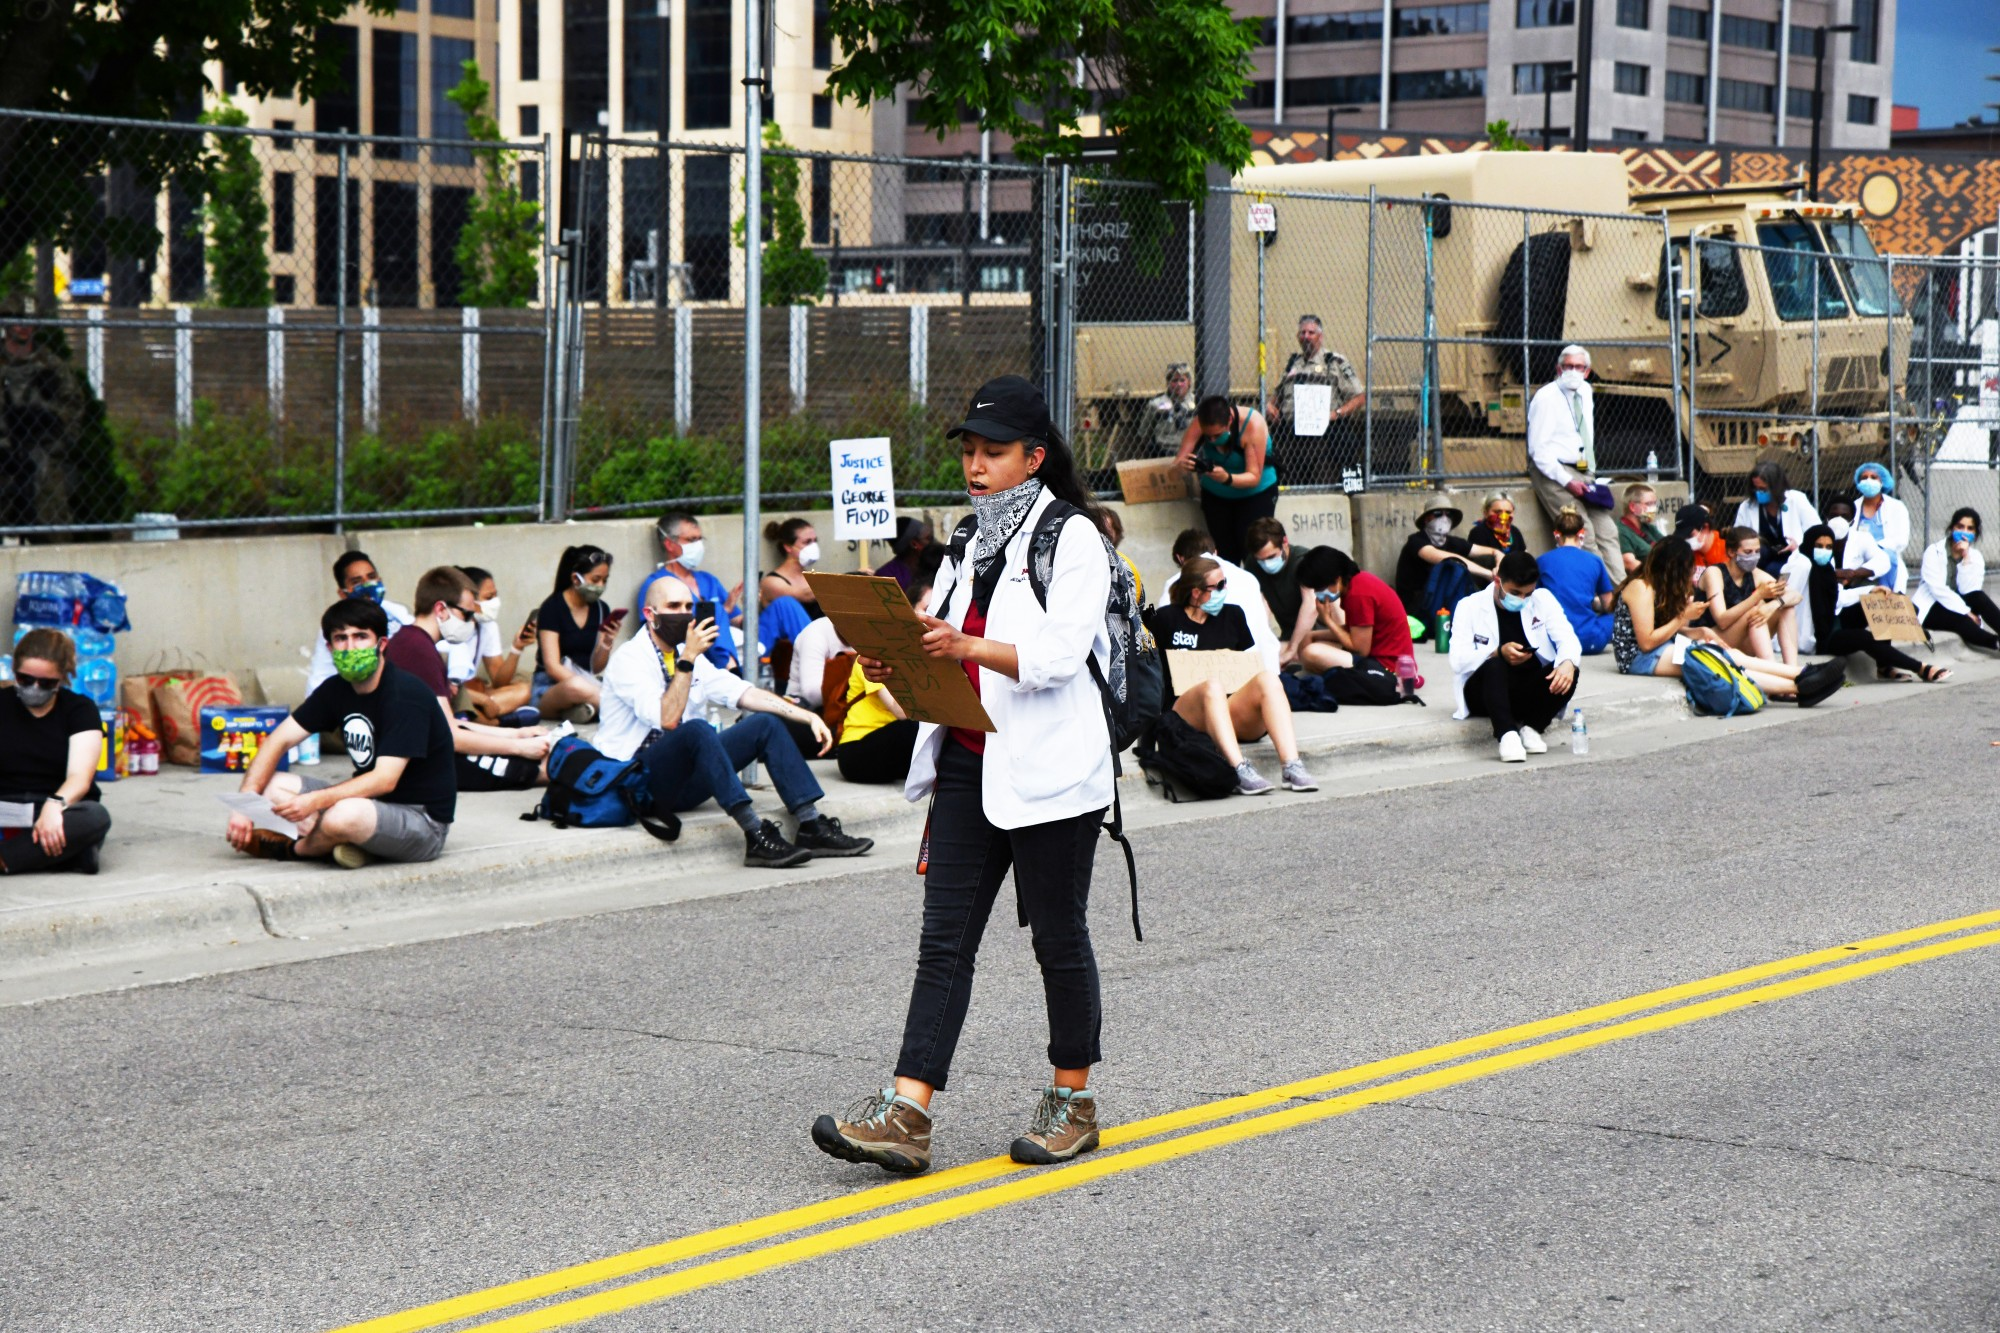 University of Minnesota medical student Edith Hernandez reads the criminal complaint against Derek Chauvin aloud to assembled medical students and professionals in front of the Hennepin County Medical Examiner's office on Tuesday, June 2.